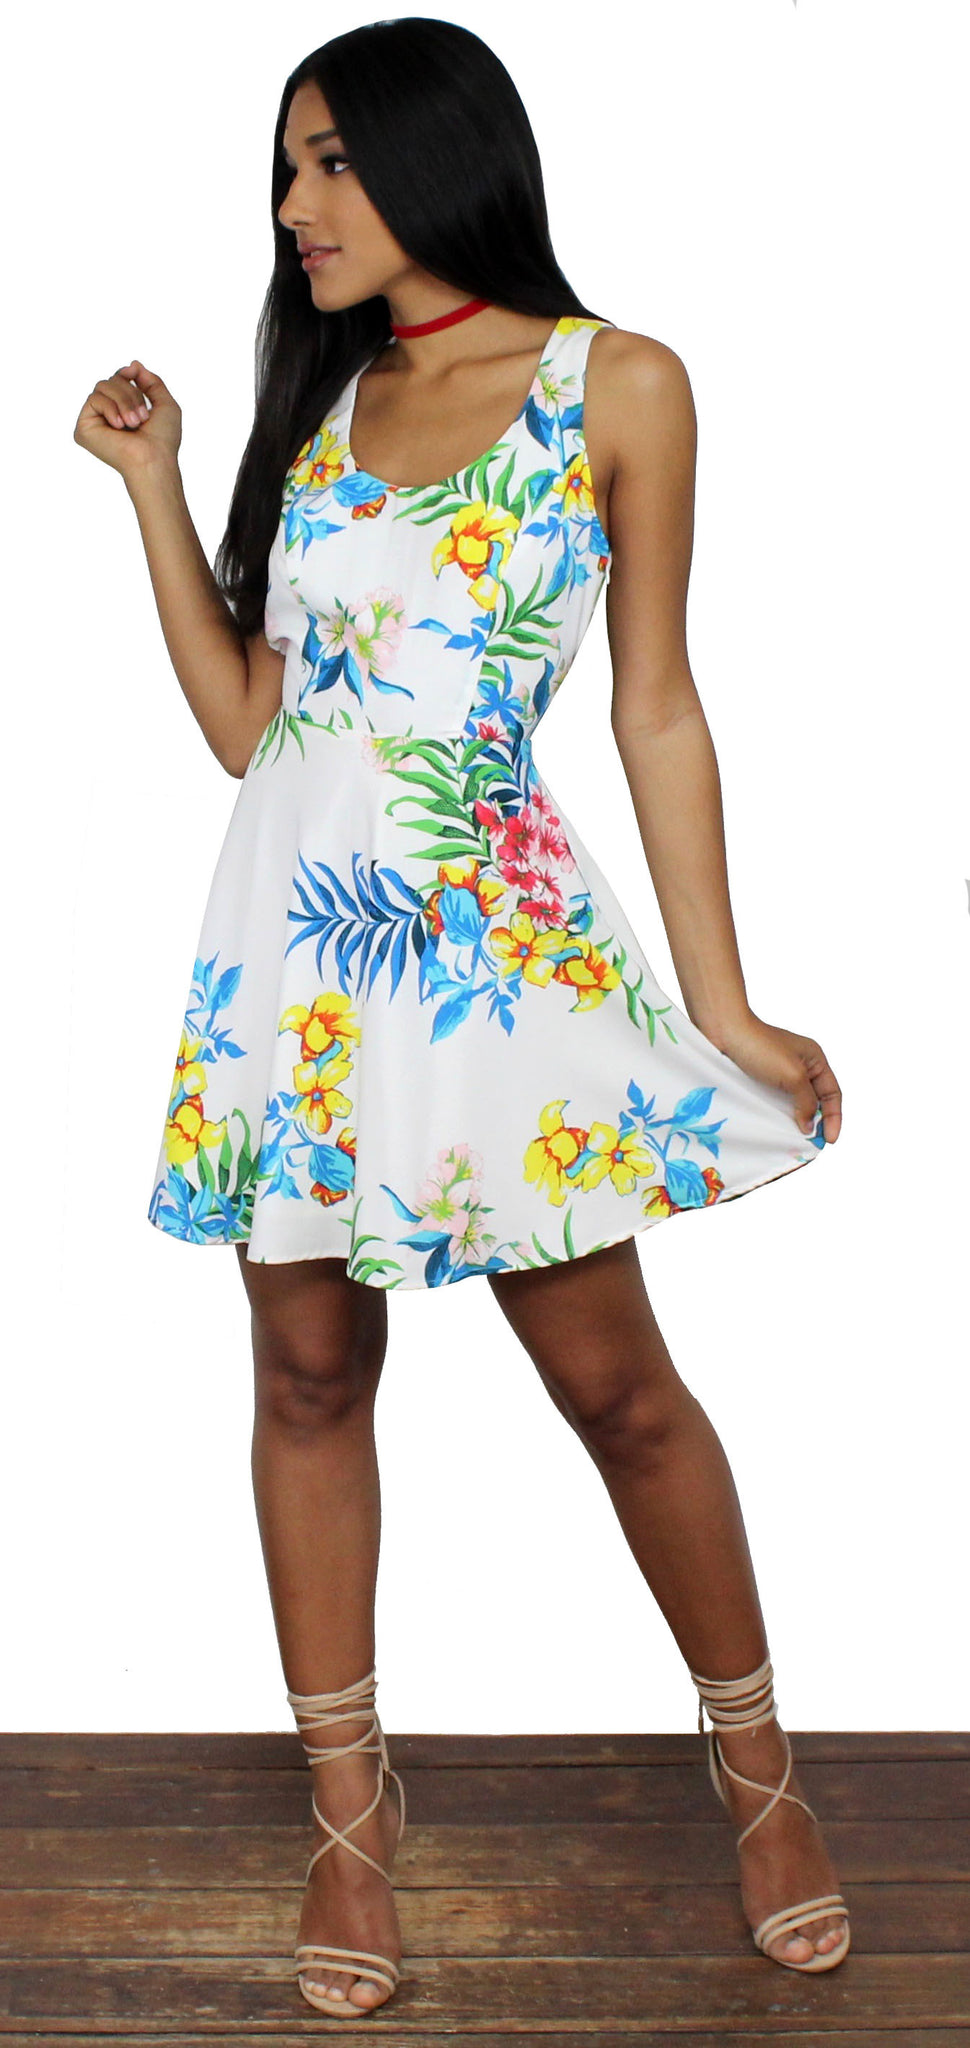 Undiscovered Island Floral Print Dress